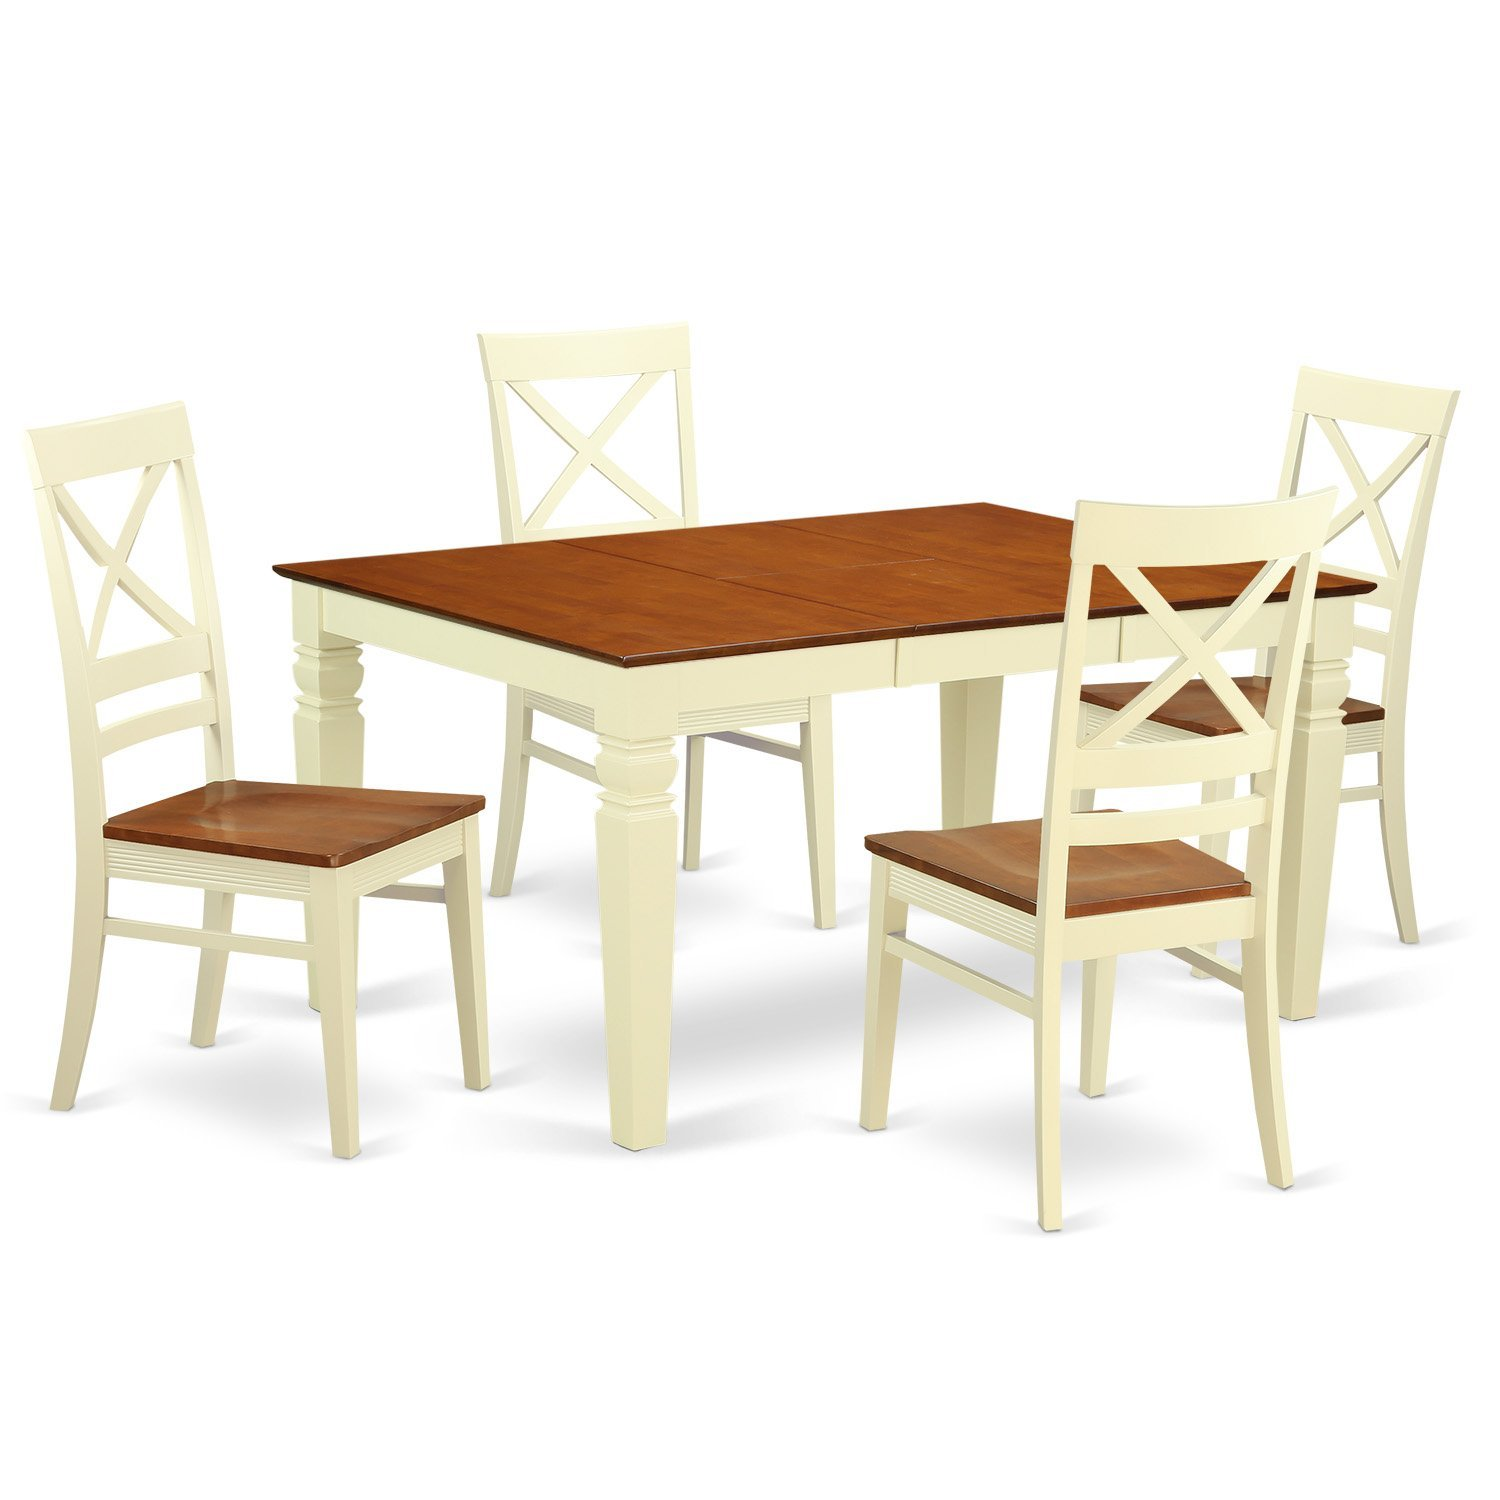 East West Furniture Weston WEQU5-BMK-W 5 Pc Kitchen Set with a Dinning Table and 4 Wood Dining Chairs, Buttermilk and Cherry